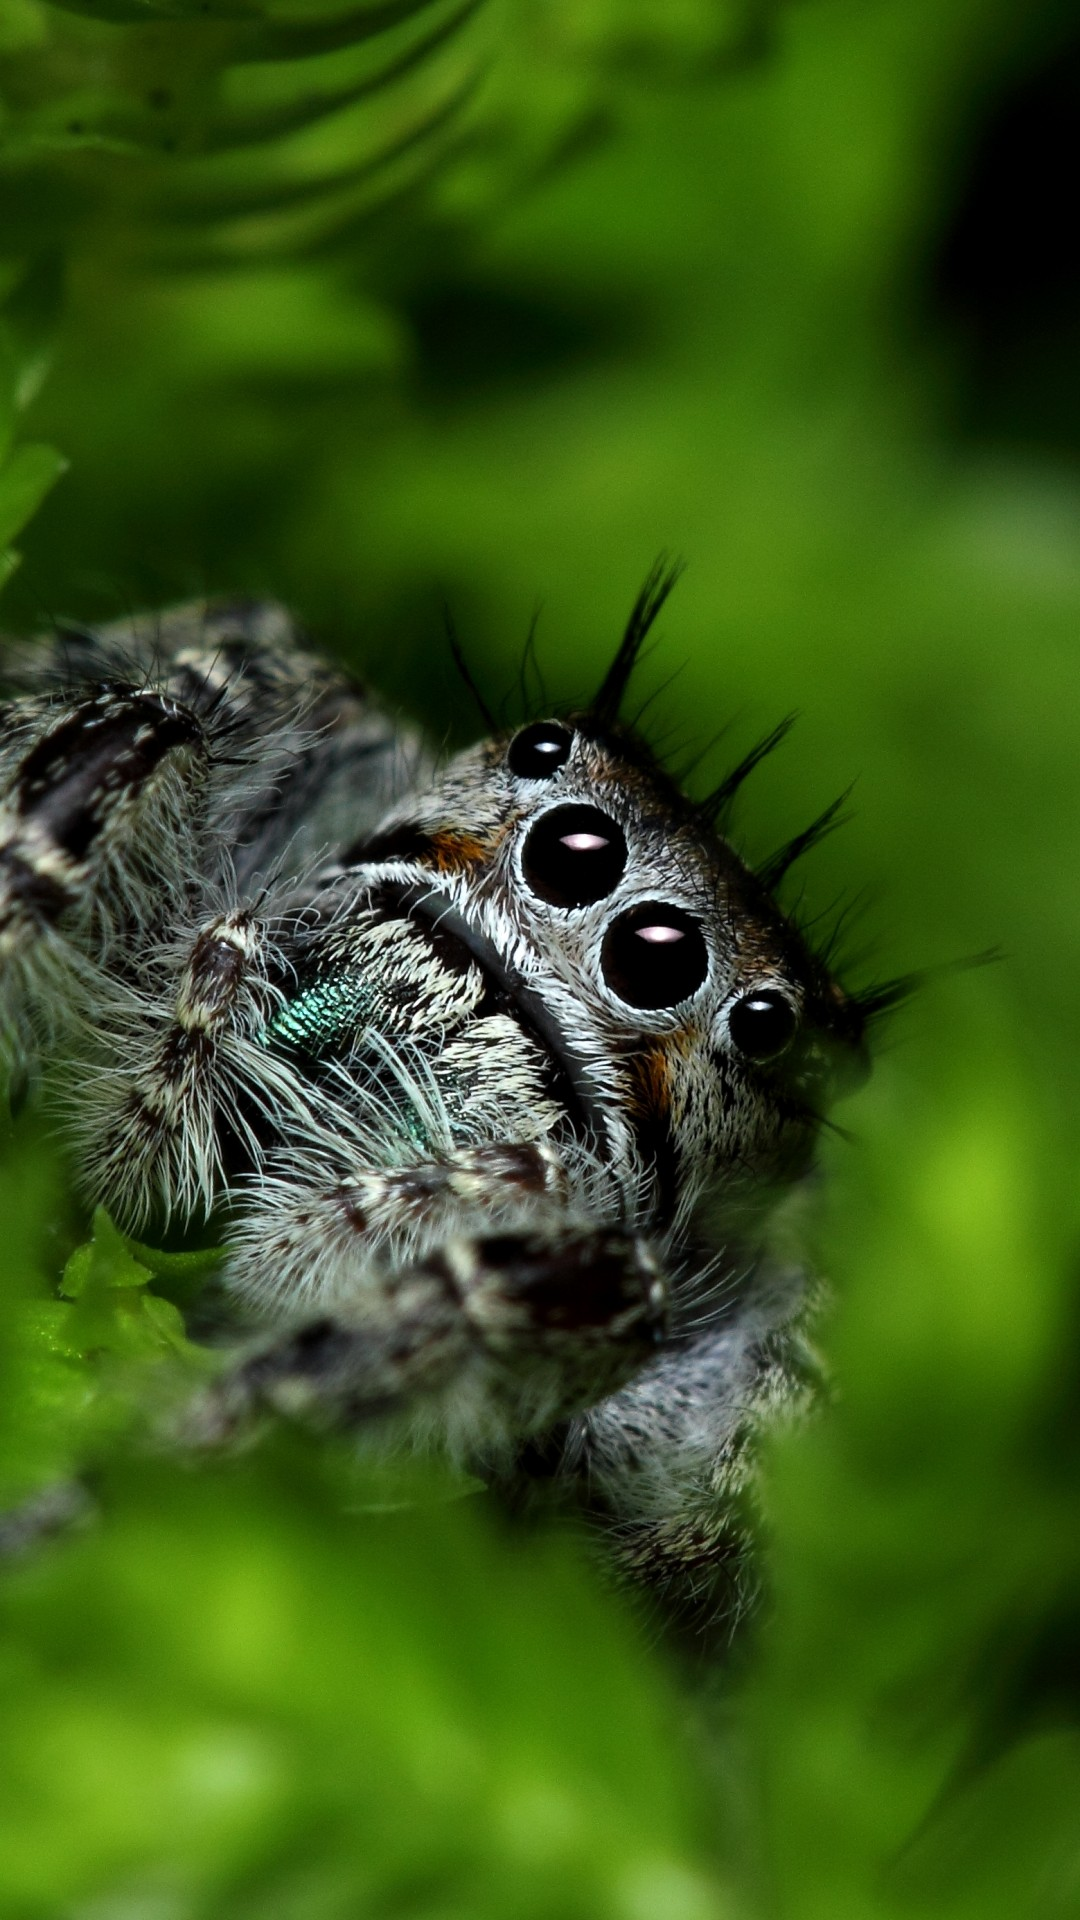 Snake Eyes Hd Wallpapers Wallpaper Jumping Spider Eyes Insects Leaves Green